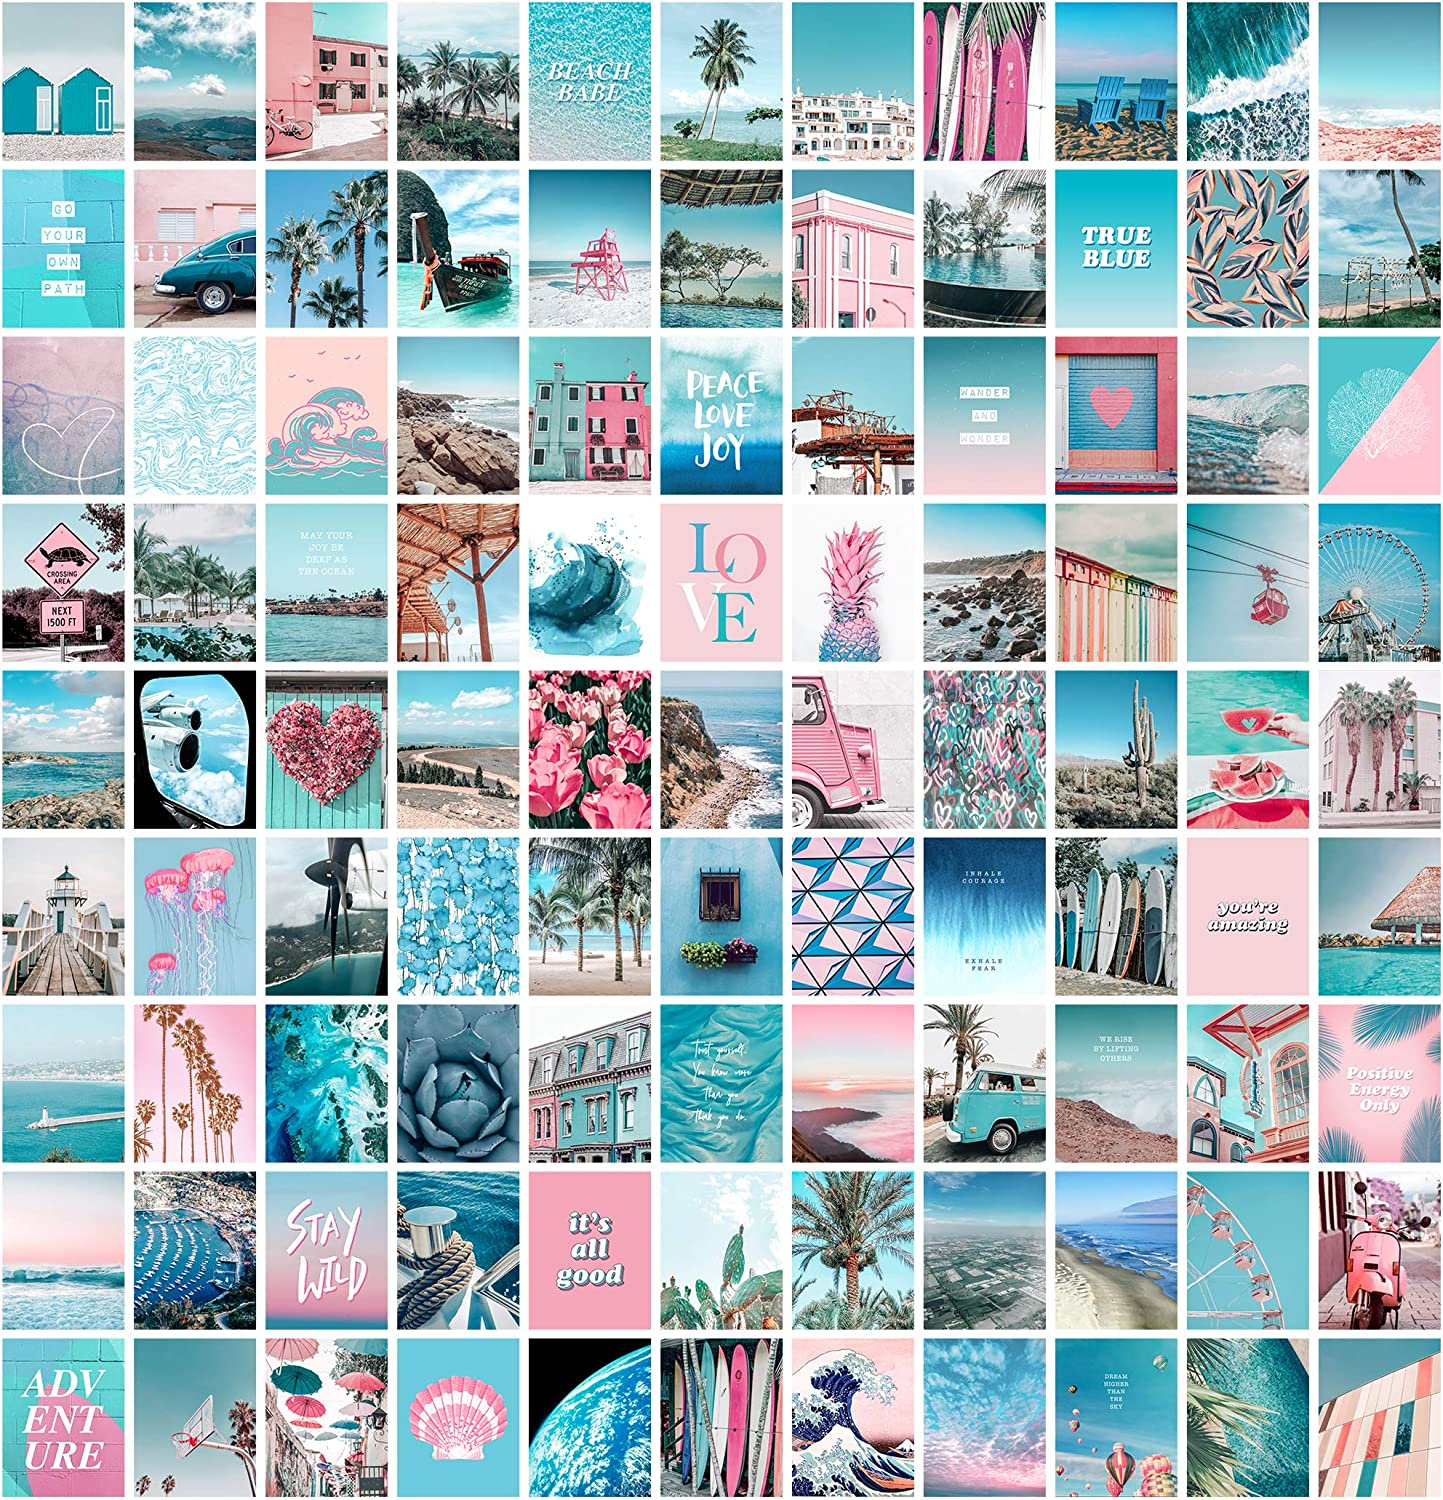 Amazon Com Blue Aesthetic Wall Collage Kit 100 Set 4x6 Inch Pink Vsco Room Decor For Teen Girls Summer Beach Wall Art Print Dorm Photo Collection Small Posters For Room Aesthetic Posters